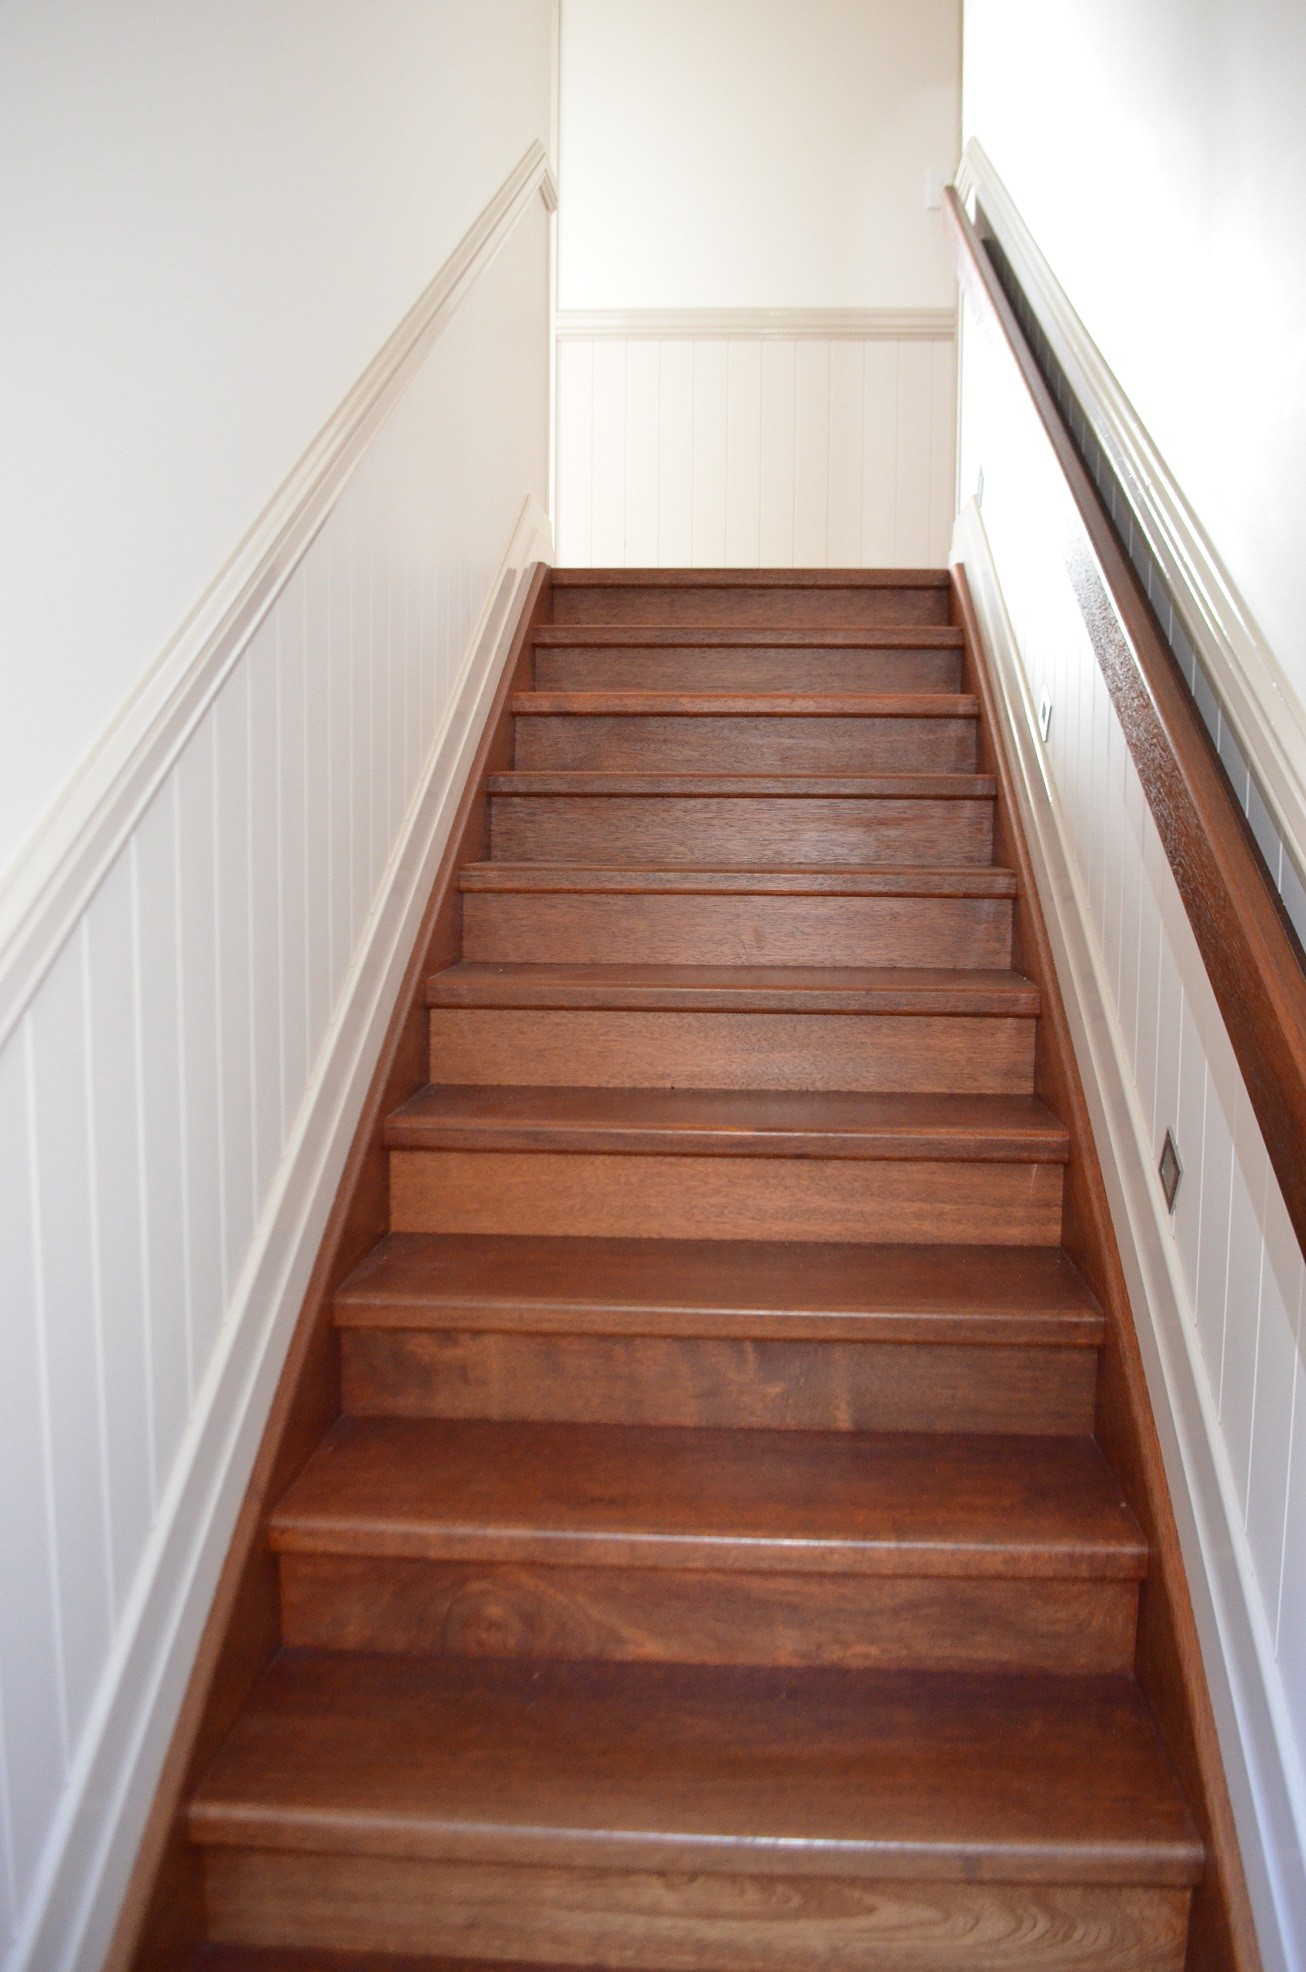 Creative Timbers Your Timber Supplier STEP TREADS